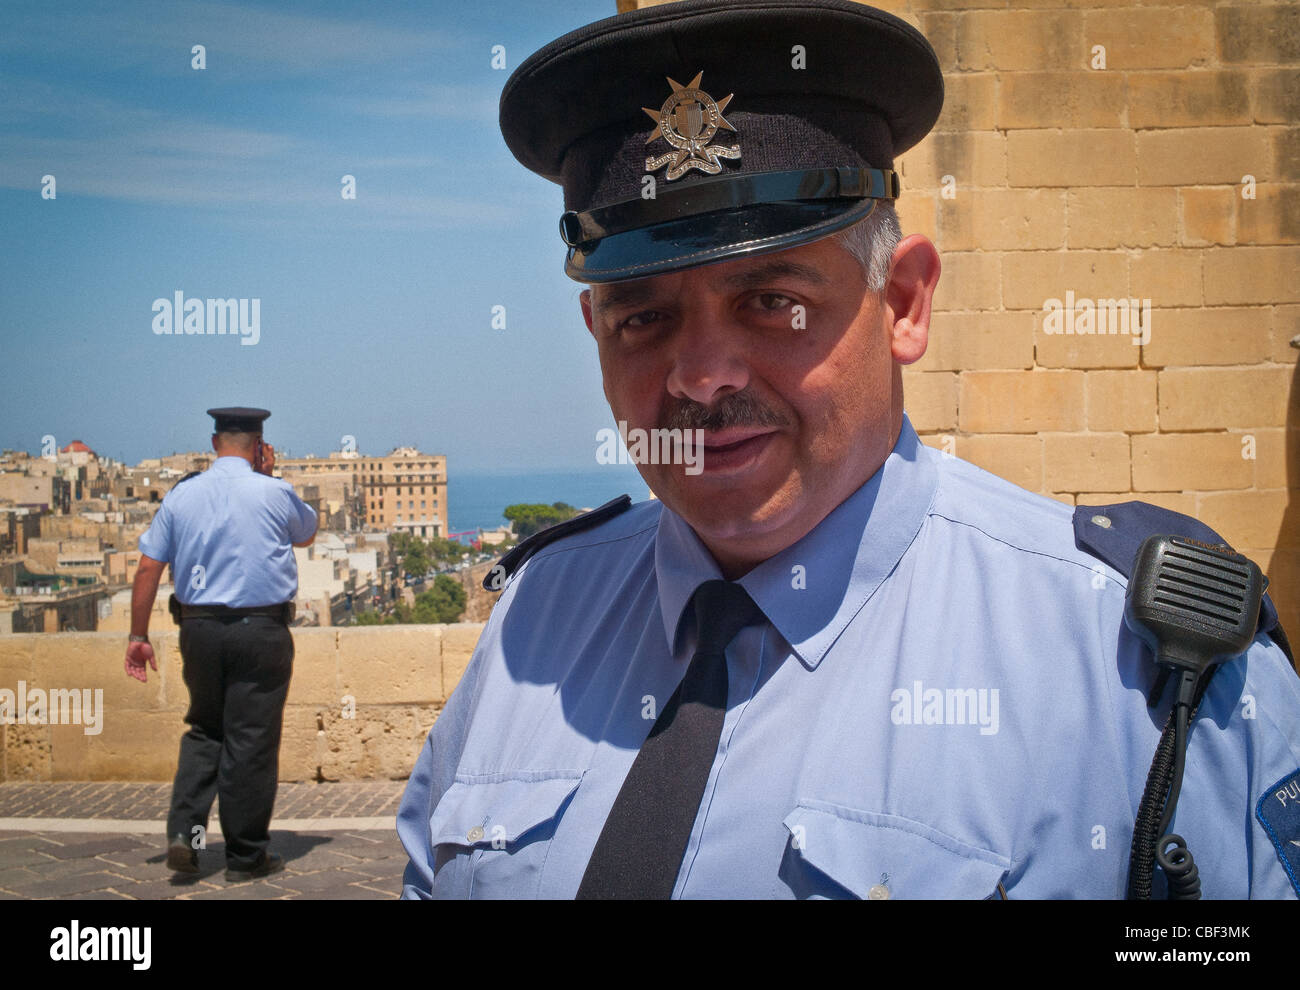 MALTENMAI Malta in May, The strengths of the Maltese Order - Stock Image